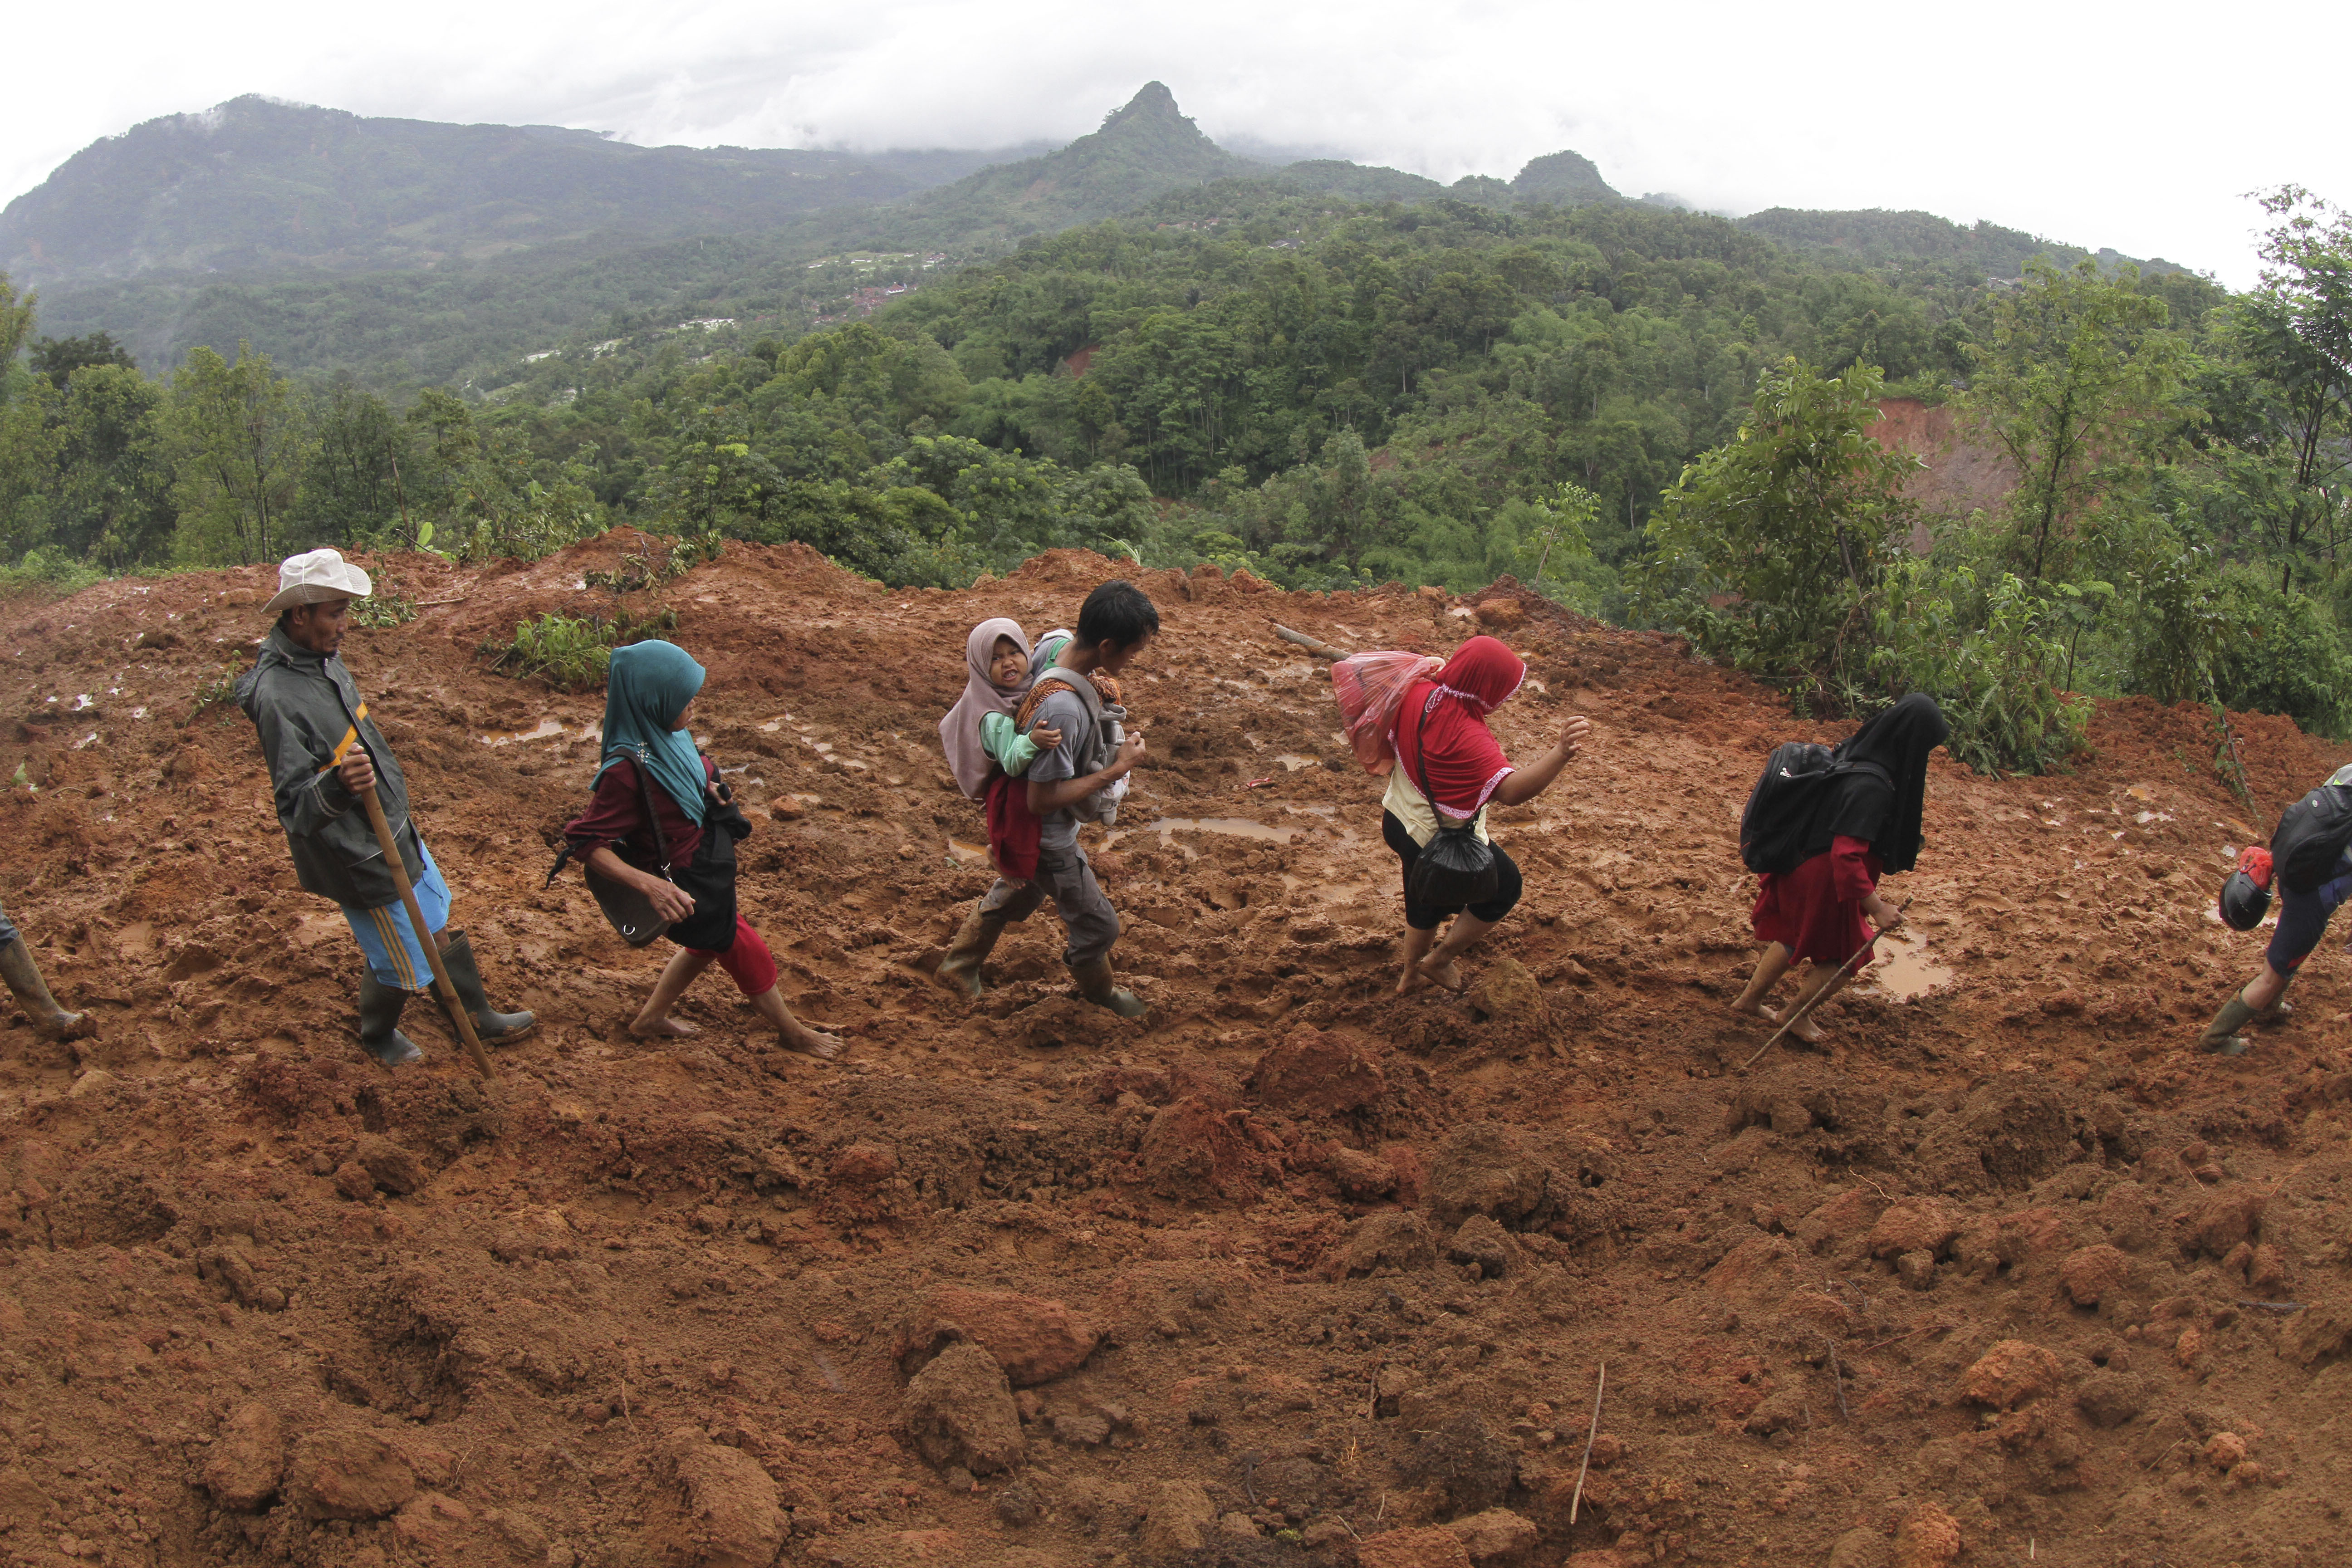 Villagers make their way through an area affected by a landslide in Sukajaya, West Java, Indonesia, on Jan. 5, 2020.